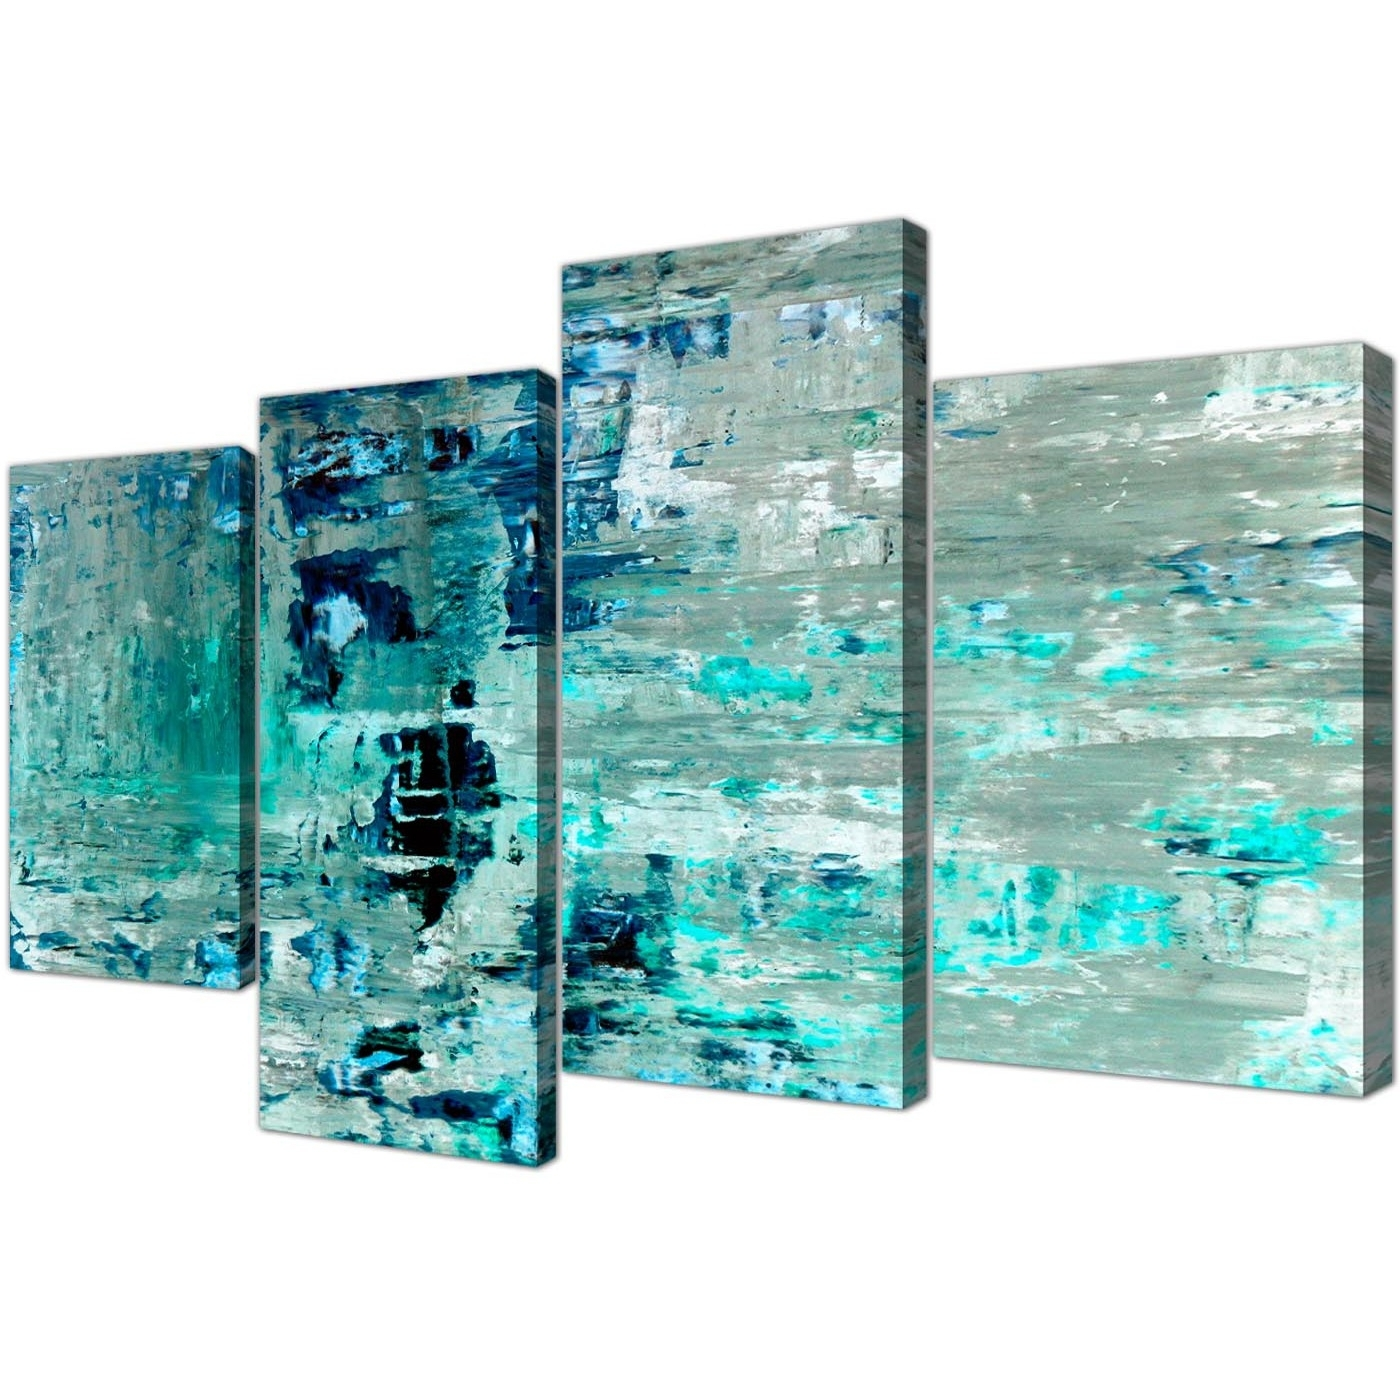 Turquoise Wall Art Pertaining To Popular Large Turquoise Teal Abstract Painting Wall Art Print Canvas – Multi (View 2 of 15)